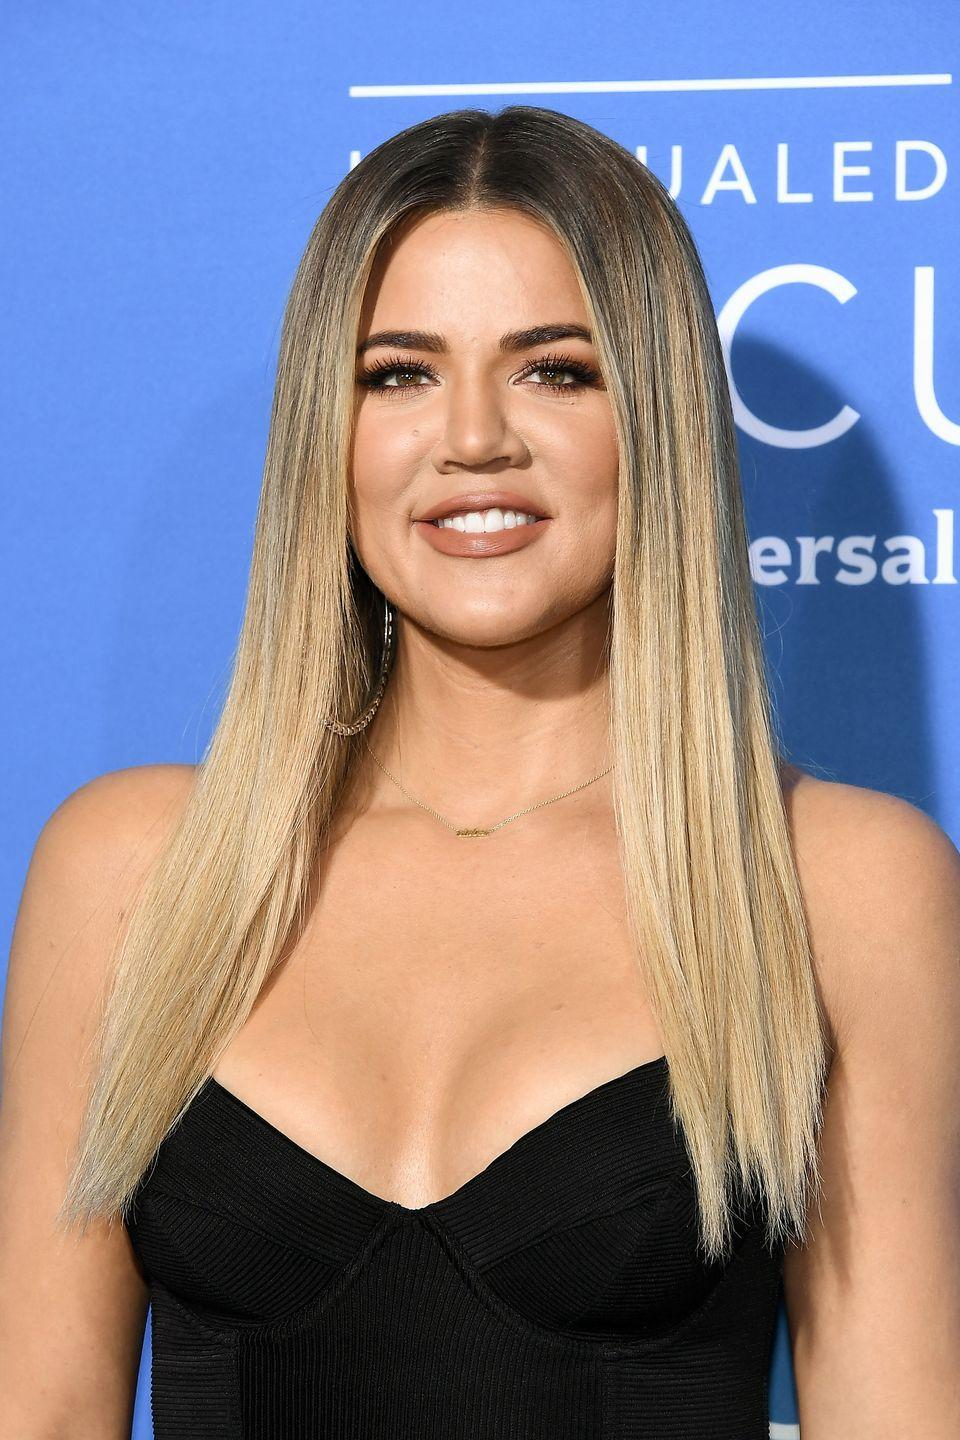 "<p>It's no secret Khloé Kardashian has undergone plastic surgery, but she wasn't entirely happy with her face fillers. She had to get them dissolved because <a href=""https://youtu.be/yA-G2AjQEbY?t=66"" rel=""nofollow noopener"" target=""_blank"" data-ylk=""slk:she said they made her look ""crazy."""" class=""link rapid-noclick-resp"">she said they made her look ""crazy.""</a></p>"